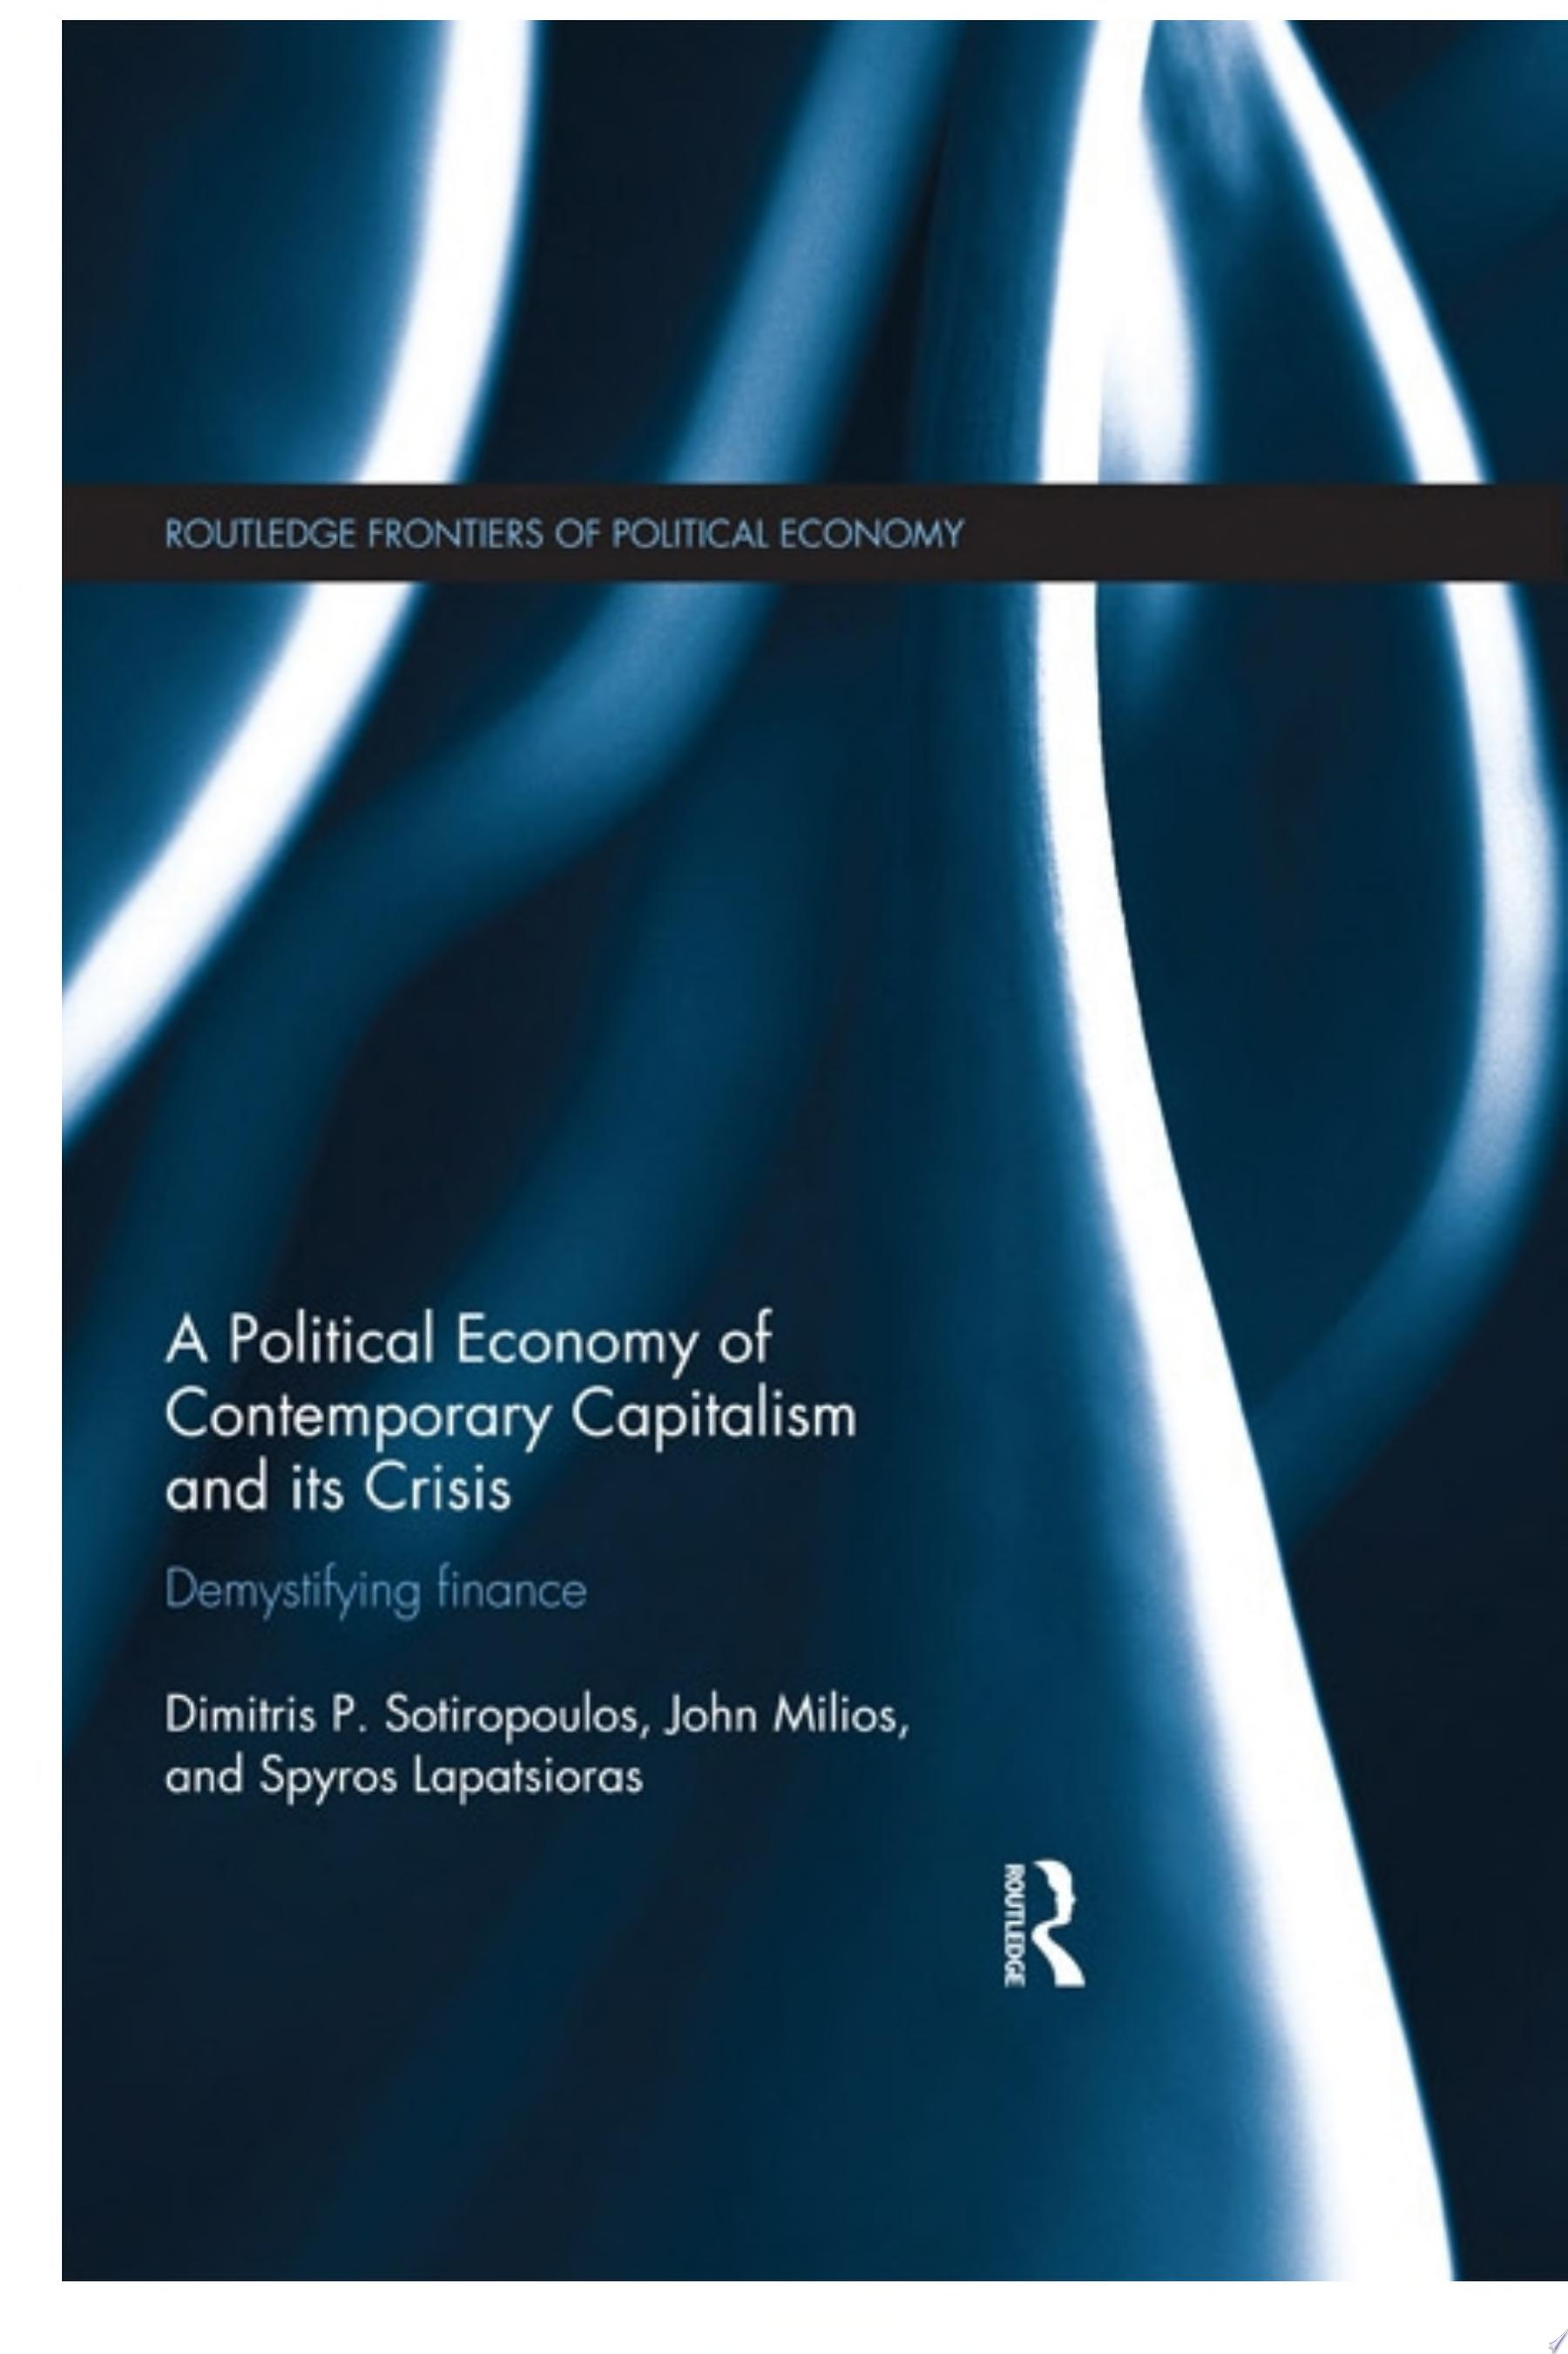 A Political Economy of Contemporary Capitalism and its Crisis